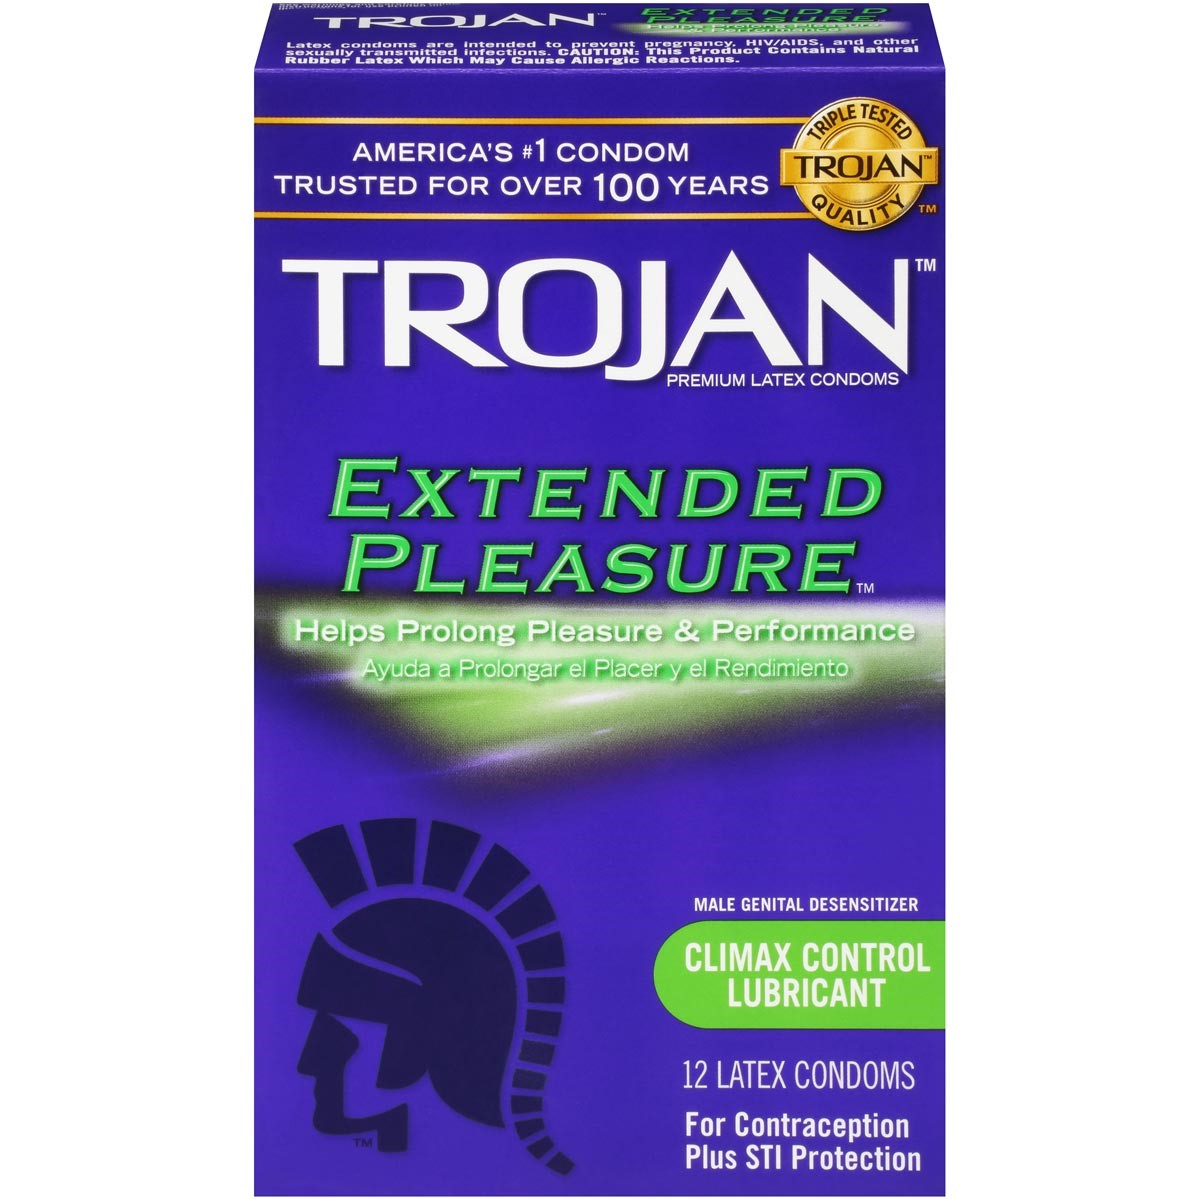 Trojan Extended Pleasure Premium Latex Condoms - 12 Pack -6564